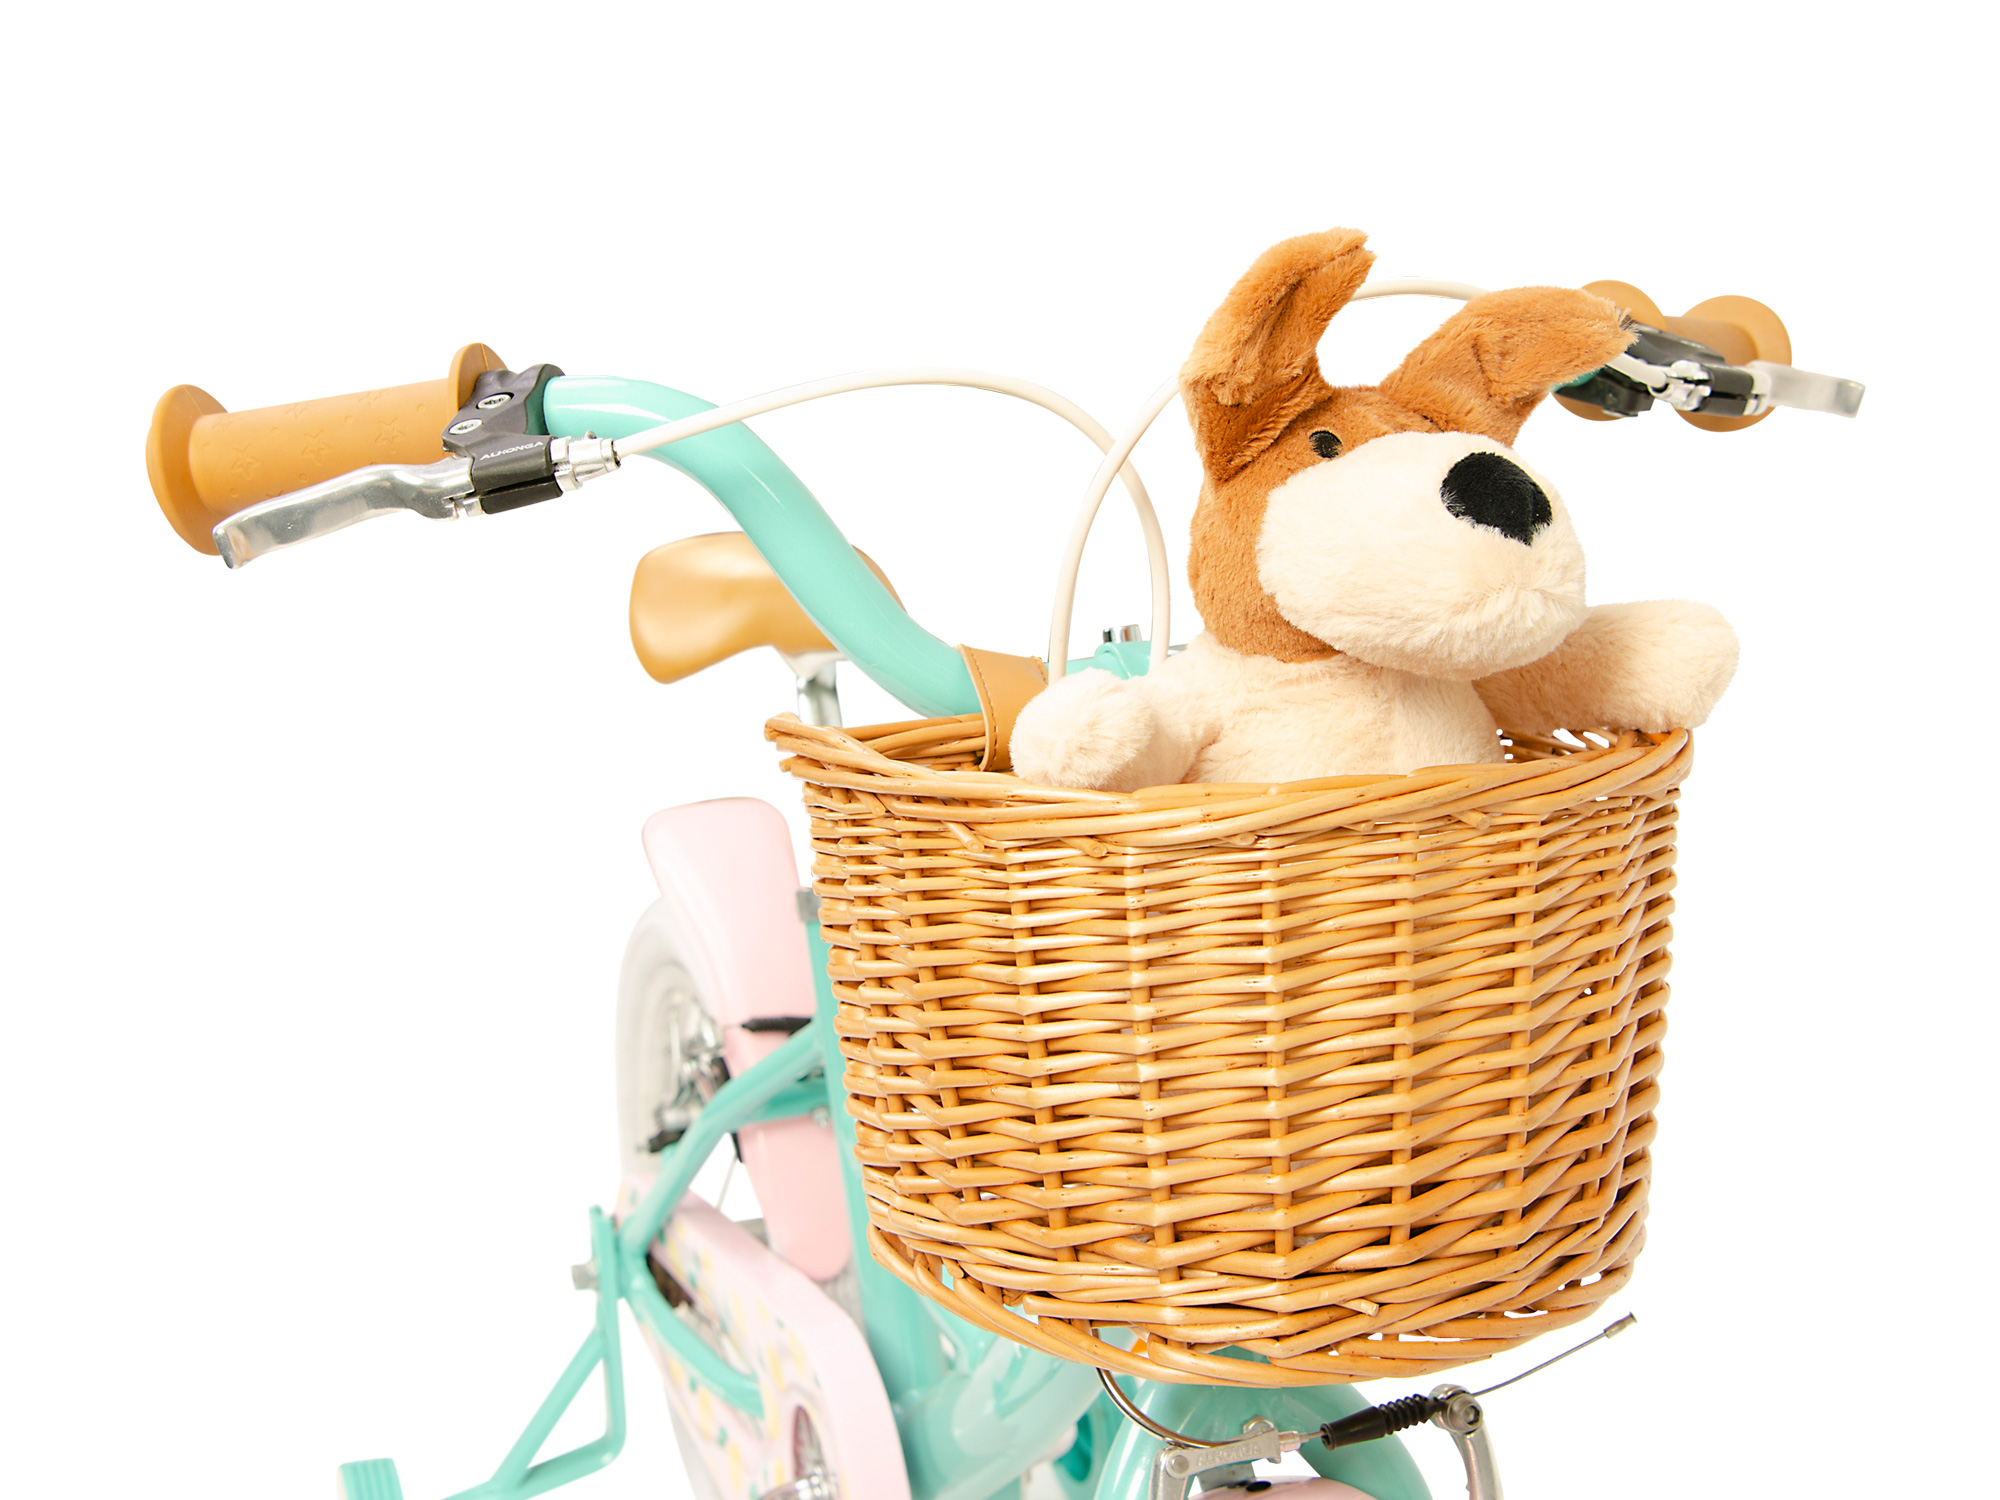 Raleigh Molli green handlebars front with soft toy